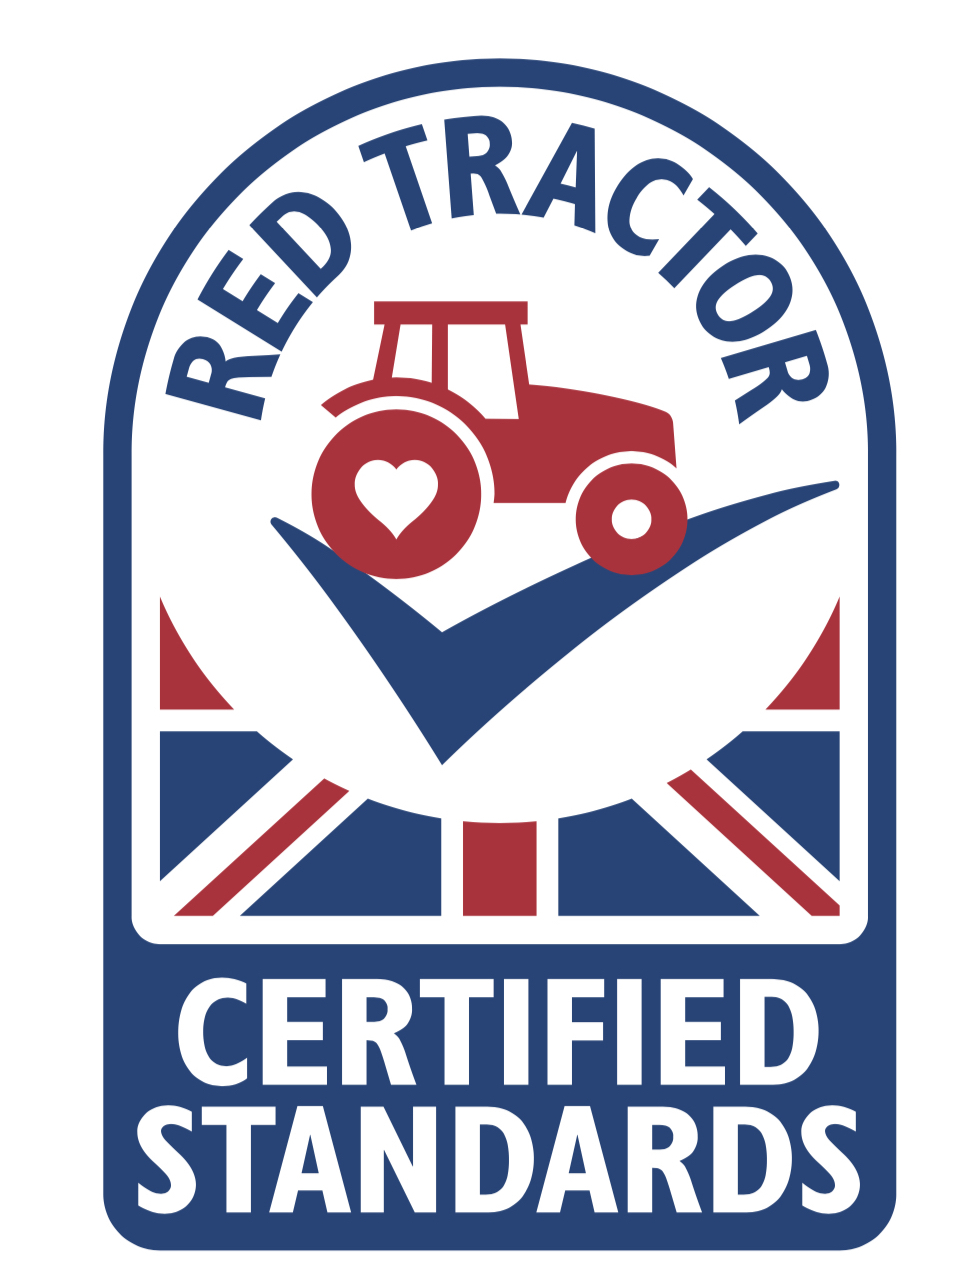 Image for Creating a new look for Red Tractor's newsletters